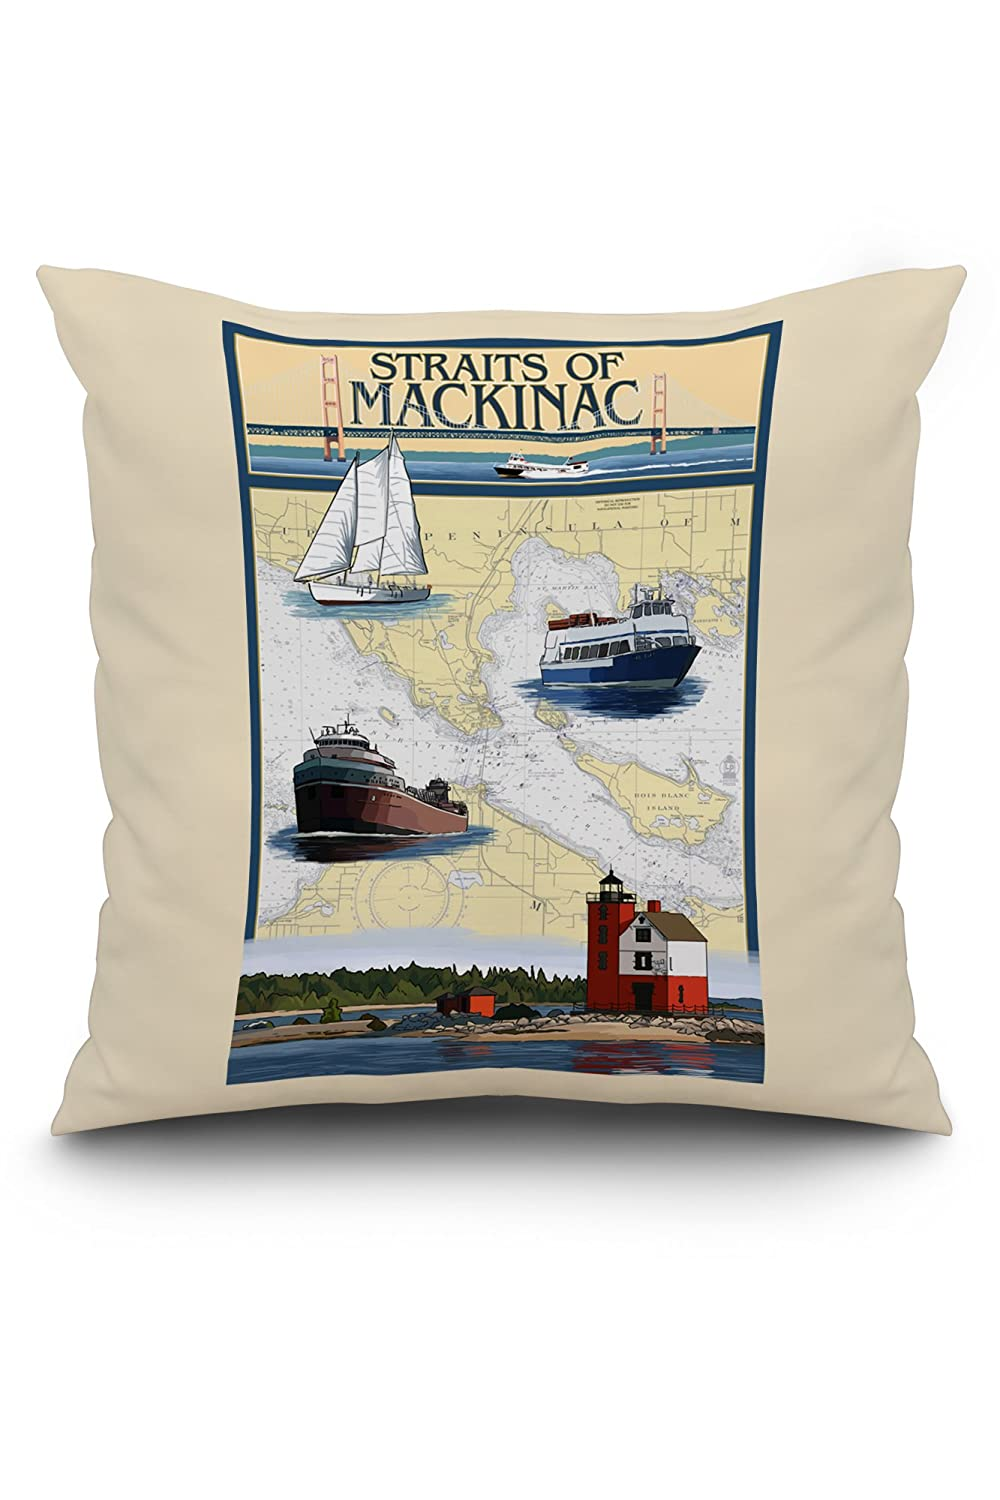 Straits of Mackinac, Michigan - Nautical Chart (20x20 Spun Polyester Pillow, White Border)